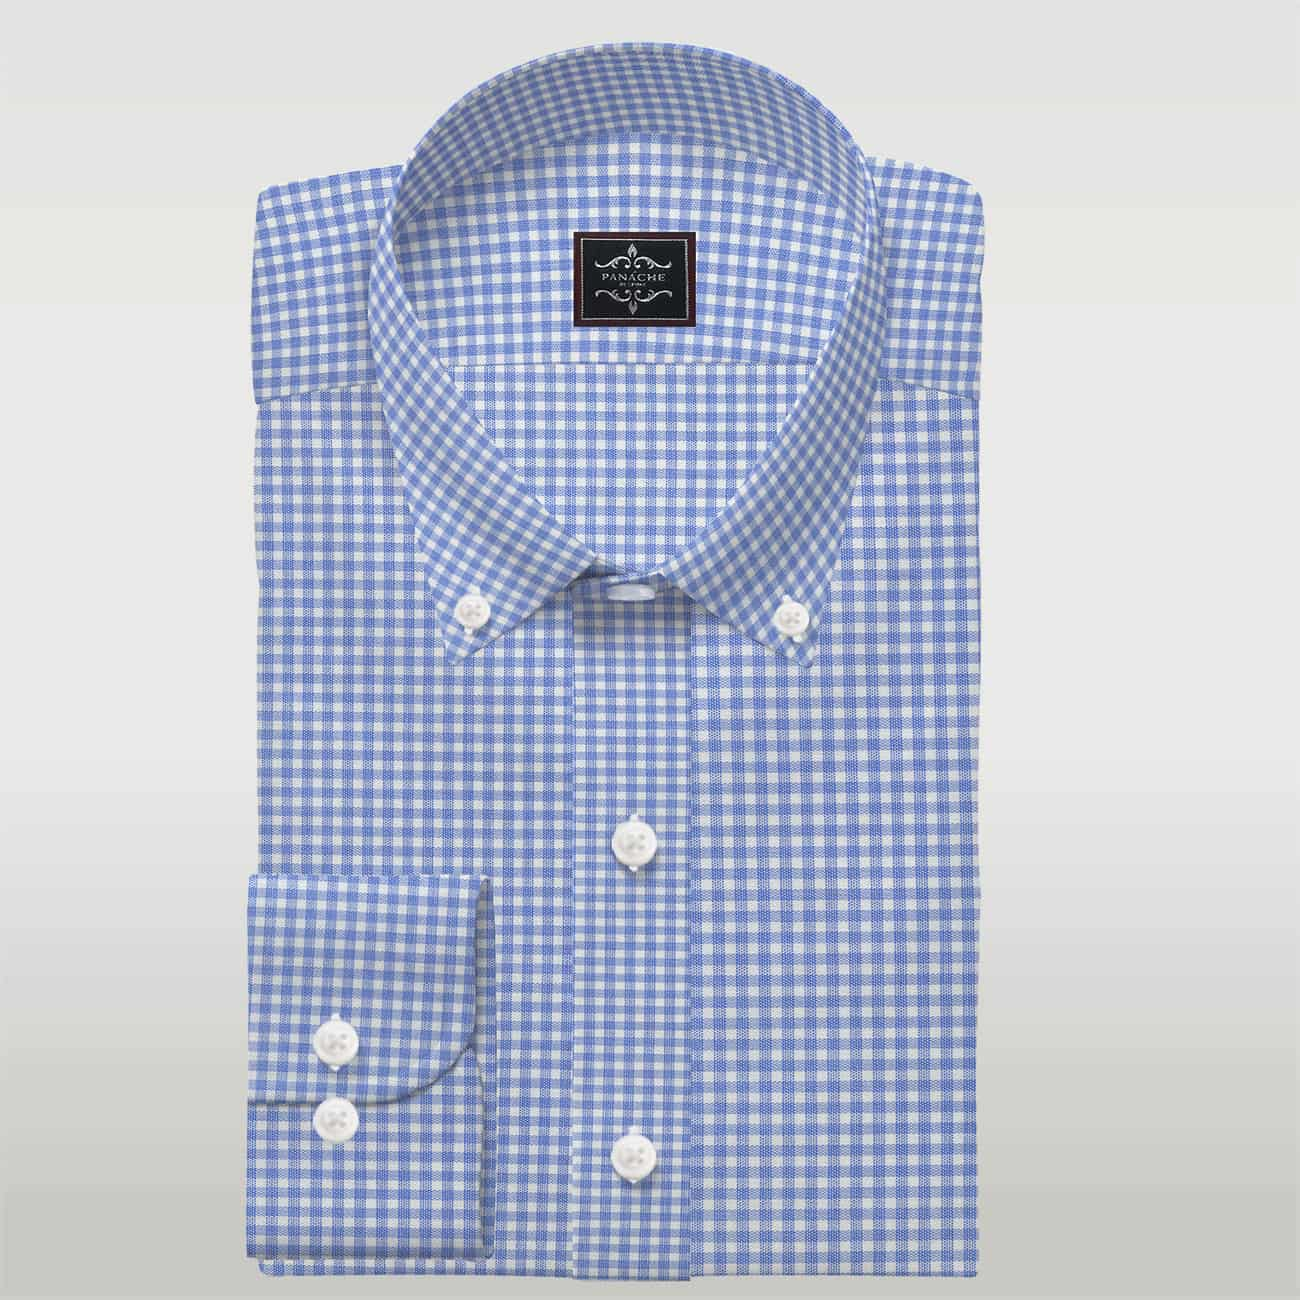 Light Blue Gingham shirt Mens Blue Dress Shirts